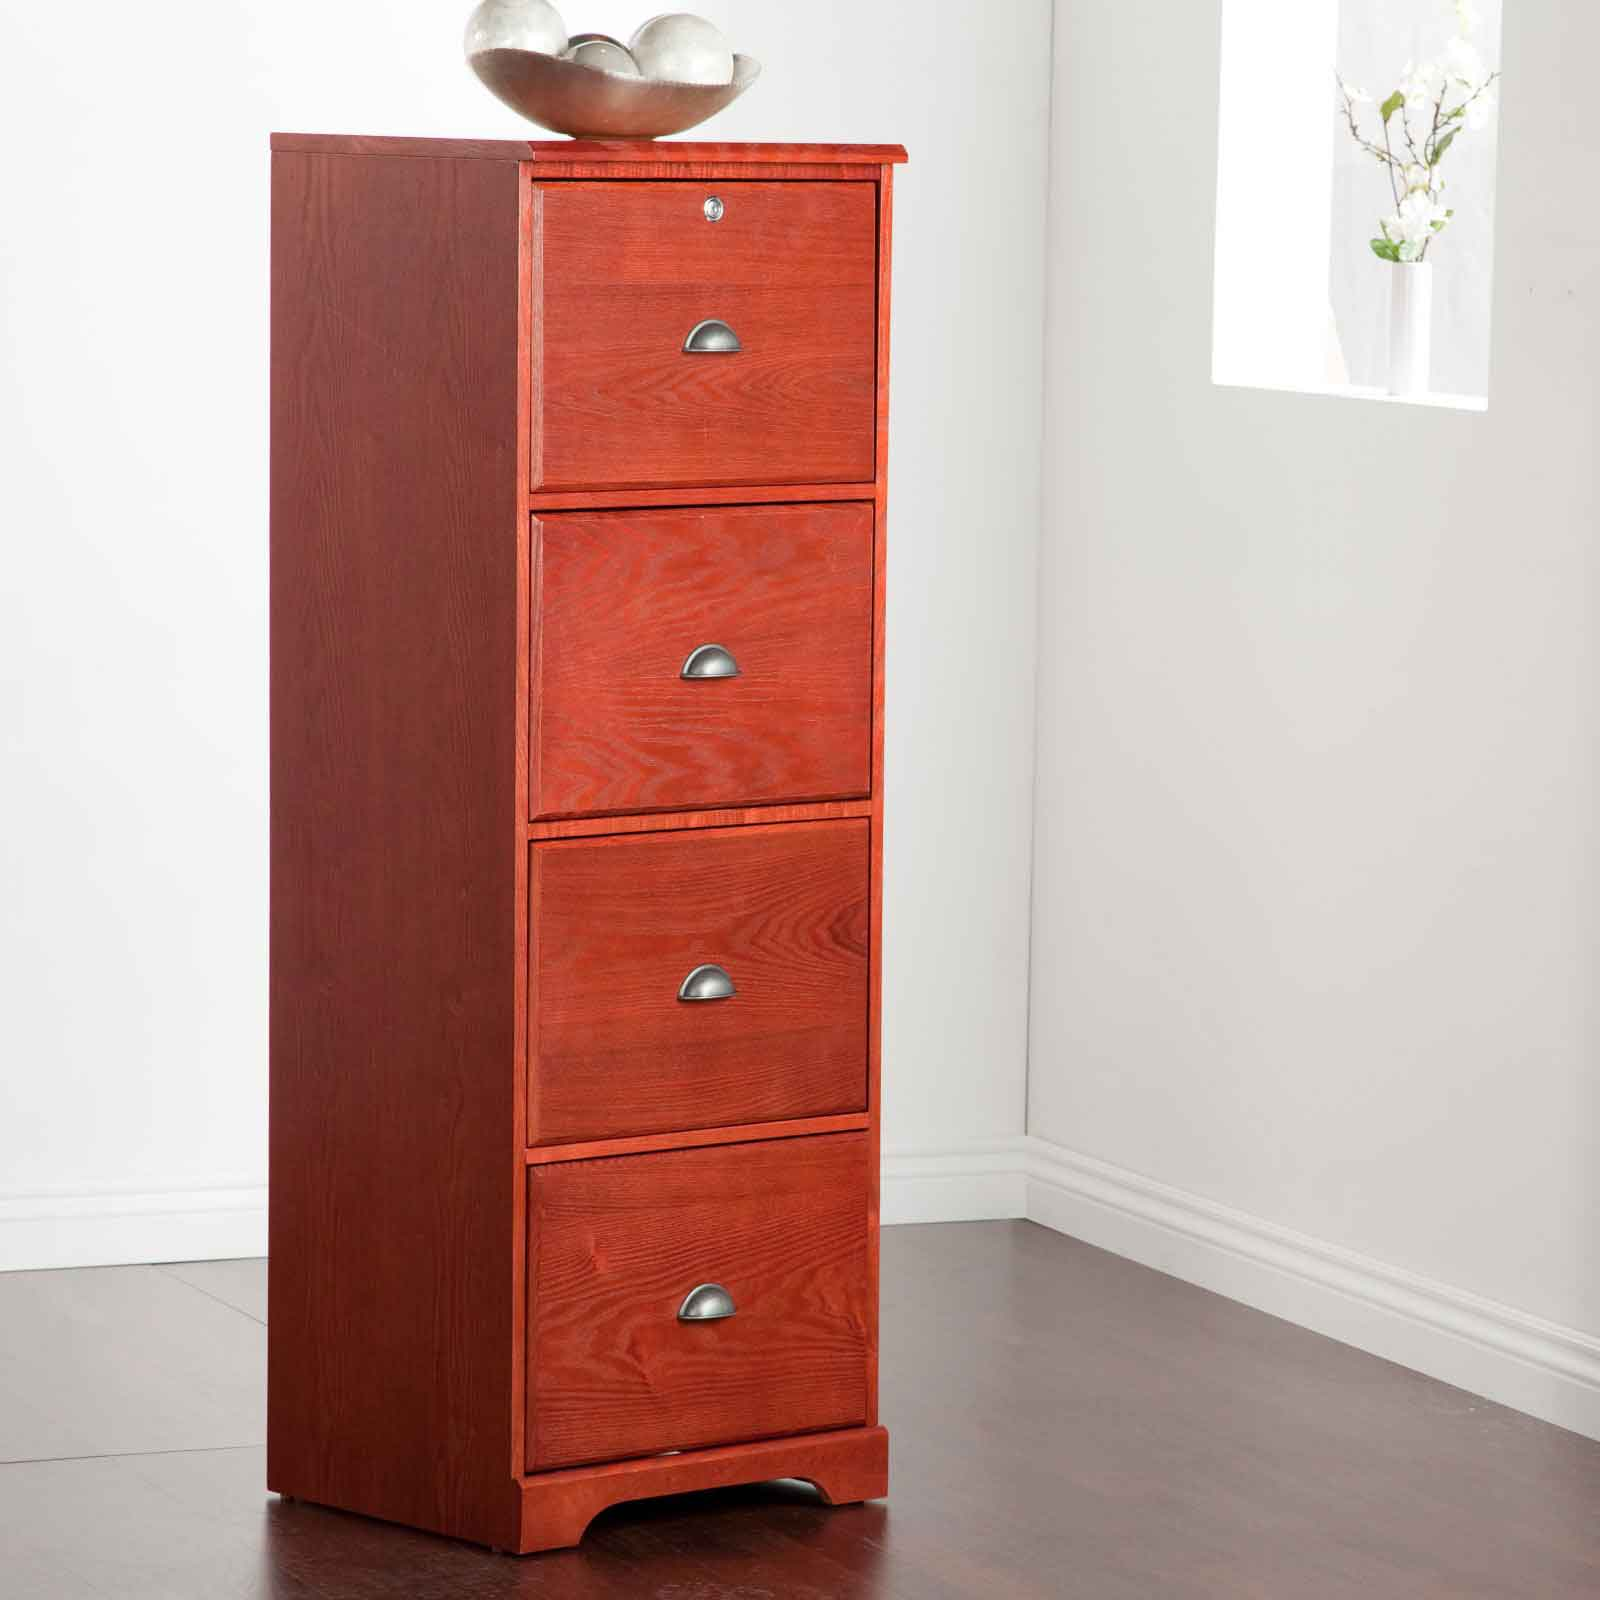 Hawthorne vertical 4 drawer wood filing cabinets